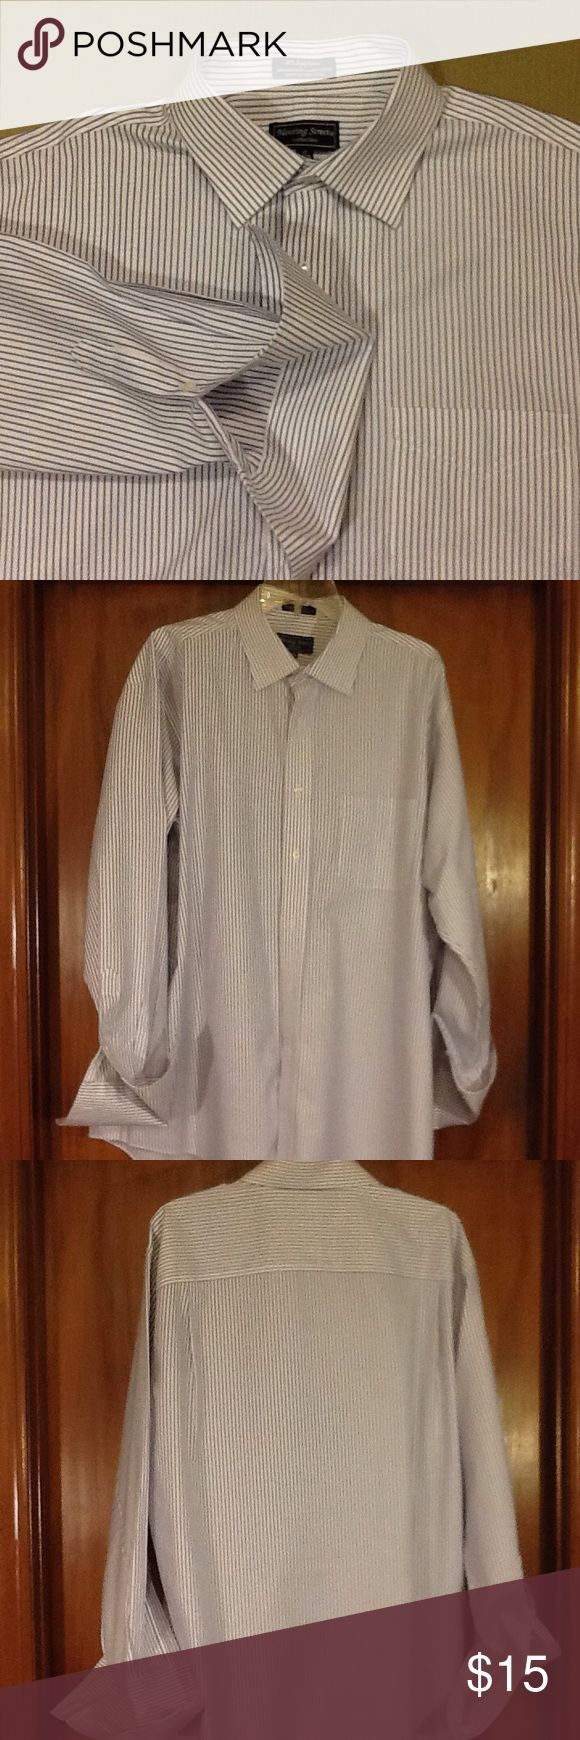 Meeting Street French cuff men's shirt, 17, 34/35 Excellent pre-owned condition. 80's 2 ply twill in 100% cotton. White with blue pinstripes. Very elegant with spread collar and french cuffs. Meeting Street Shirts Dress Shirts